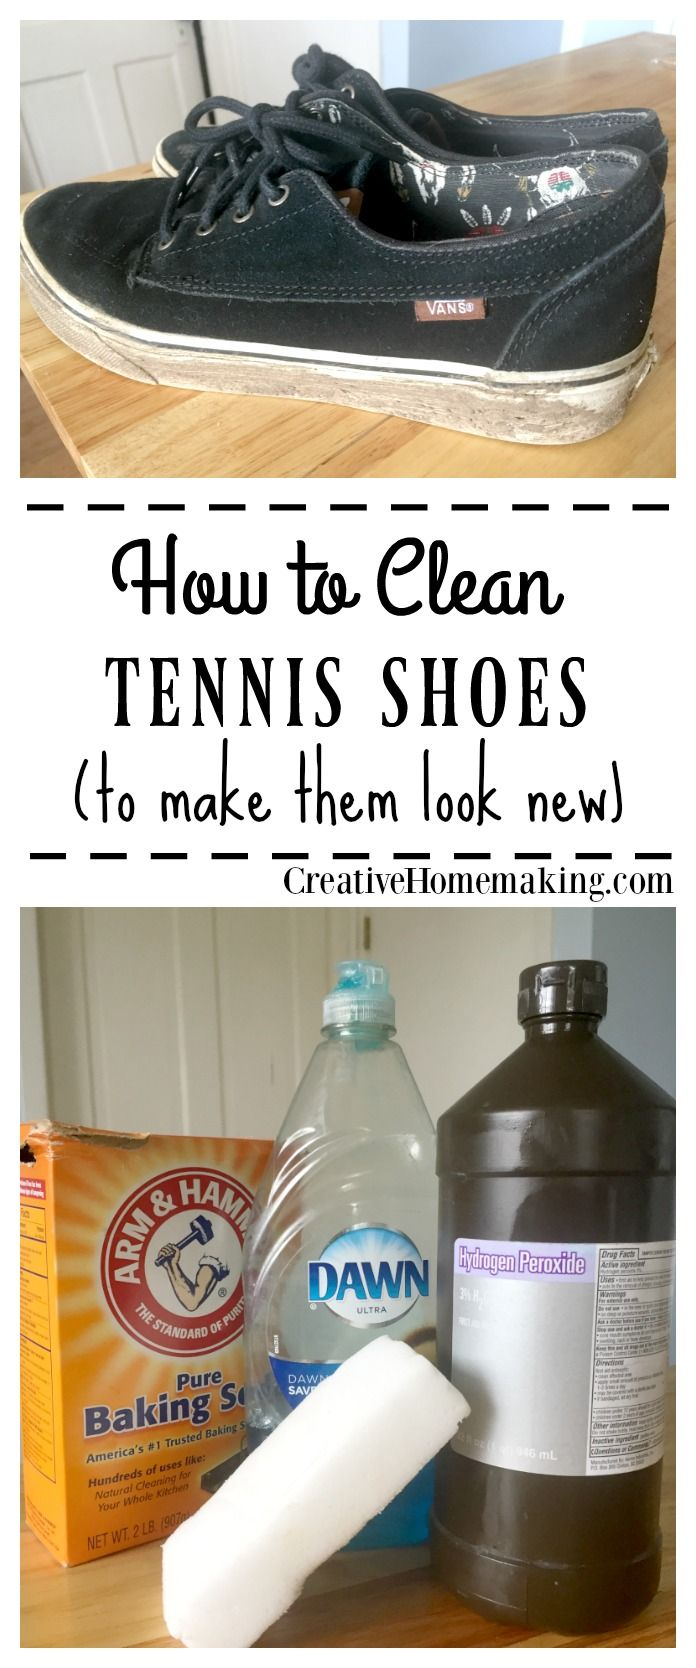 how to clean tennis shoes cleaning solutions homemaking and